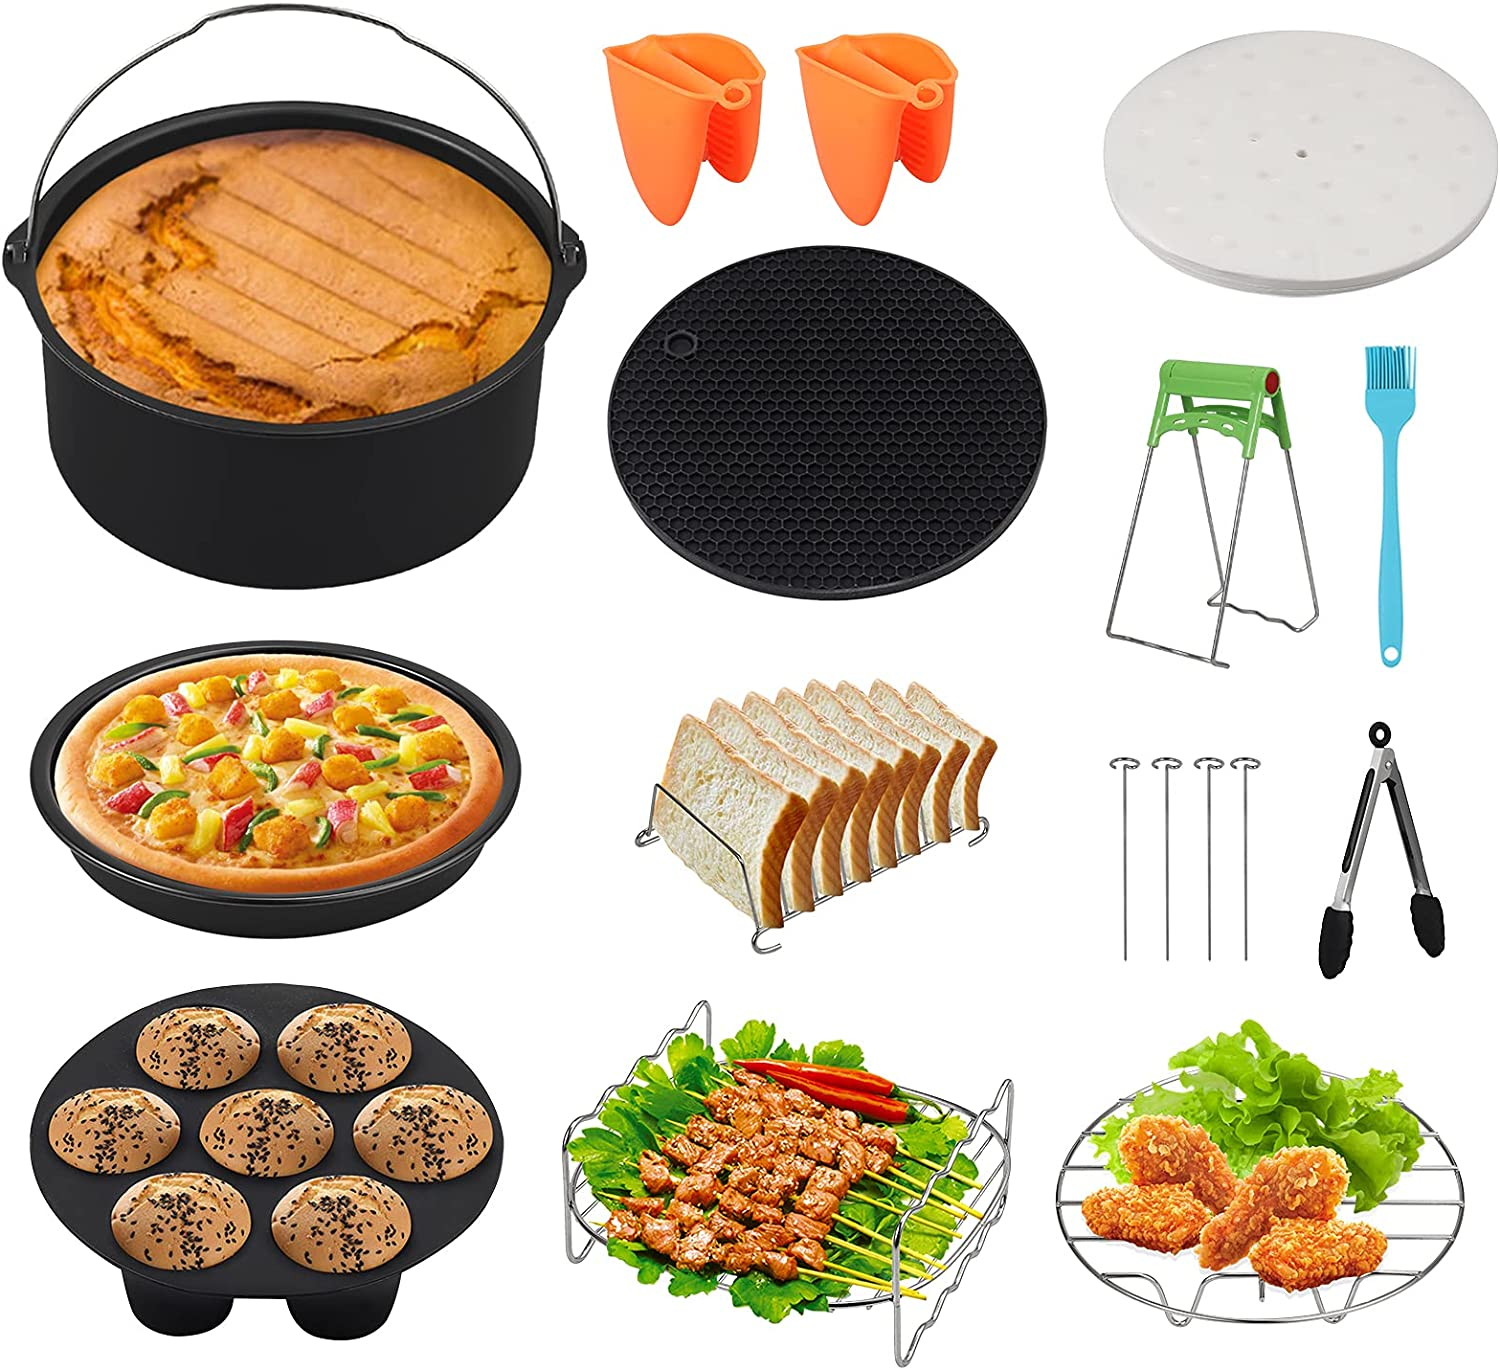 eSynic 17 Pcs Air Fryer Accessories Set 7 Inch Air Fryer Accessories Set Power Air Fryer Accessory Kit Fits 3.2QT-7.2QT for Phillips Gowise with Cake Pan, Pizza Pan, Cupcake Pan, Grill Rack ect